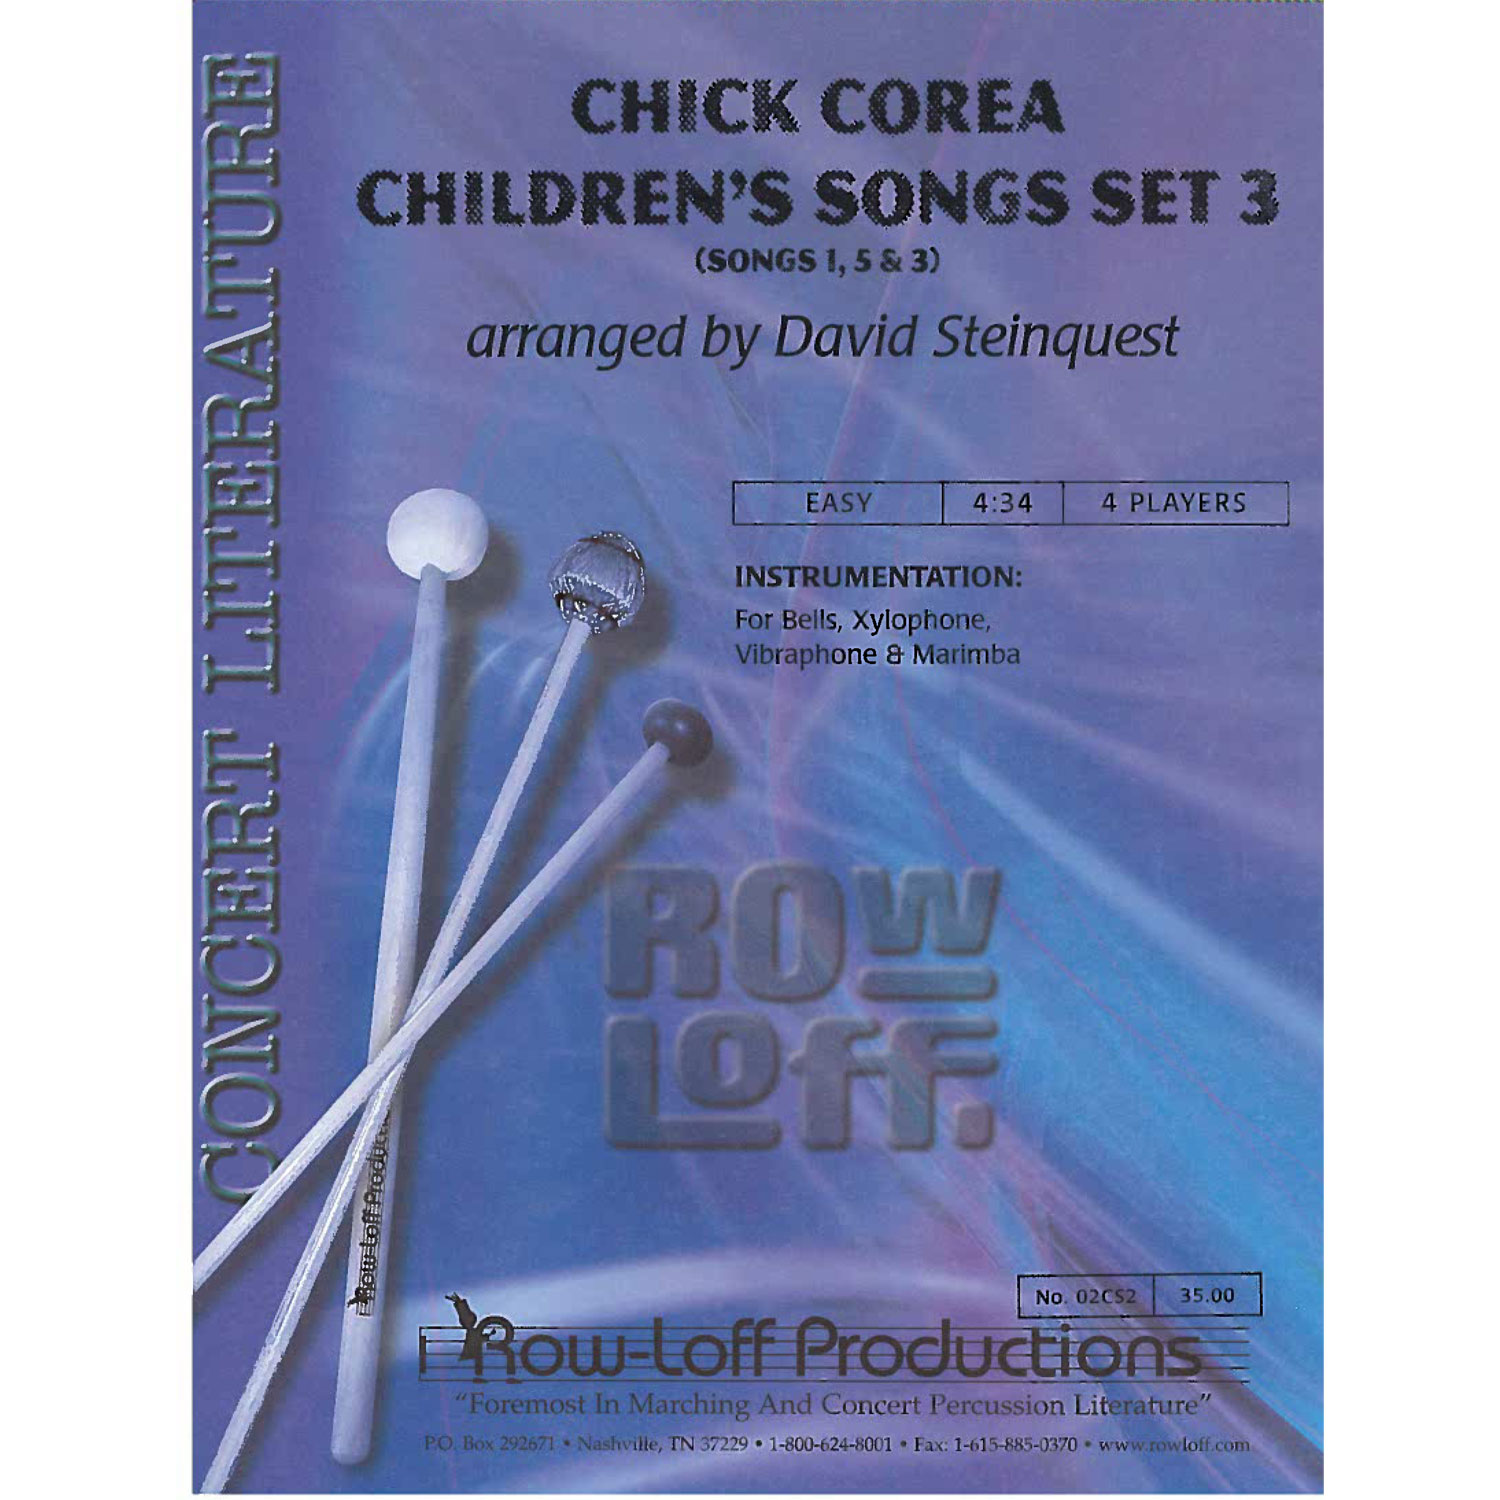 Chick Corea Children